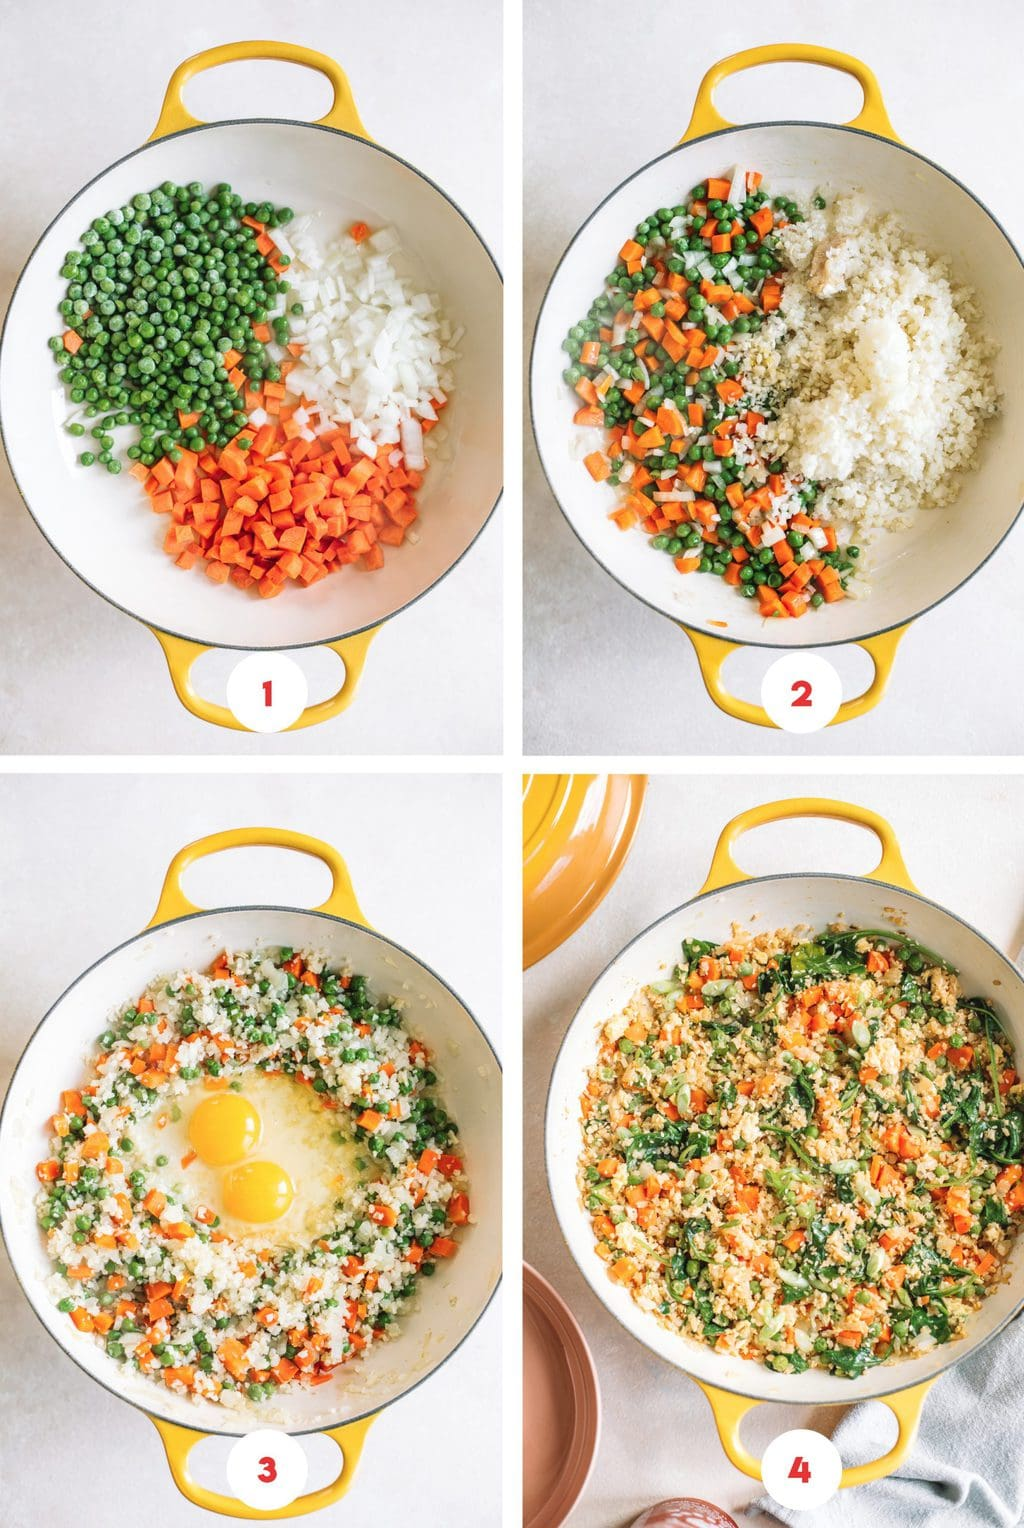 Step by step process how to make cauliflower fried rice.